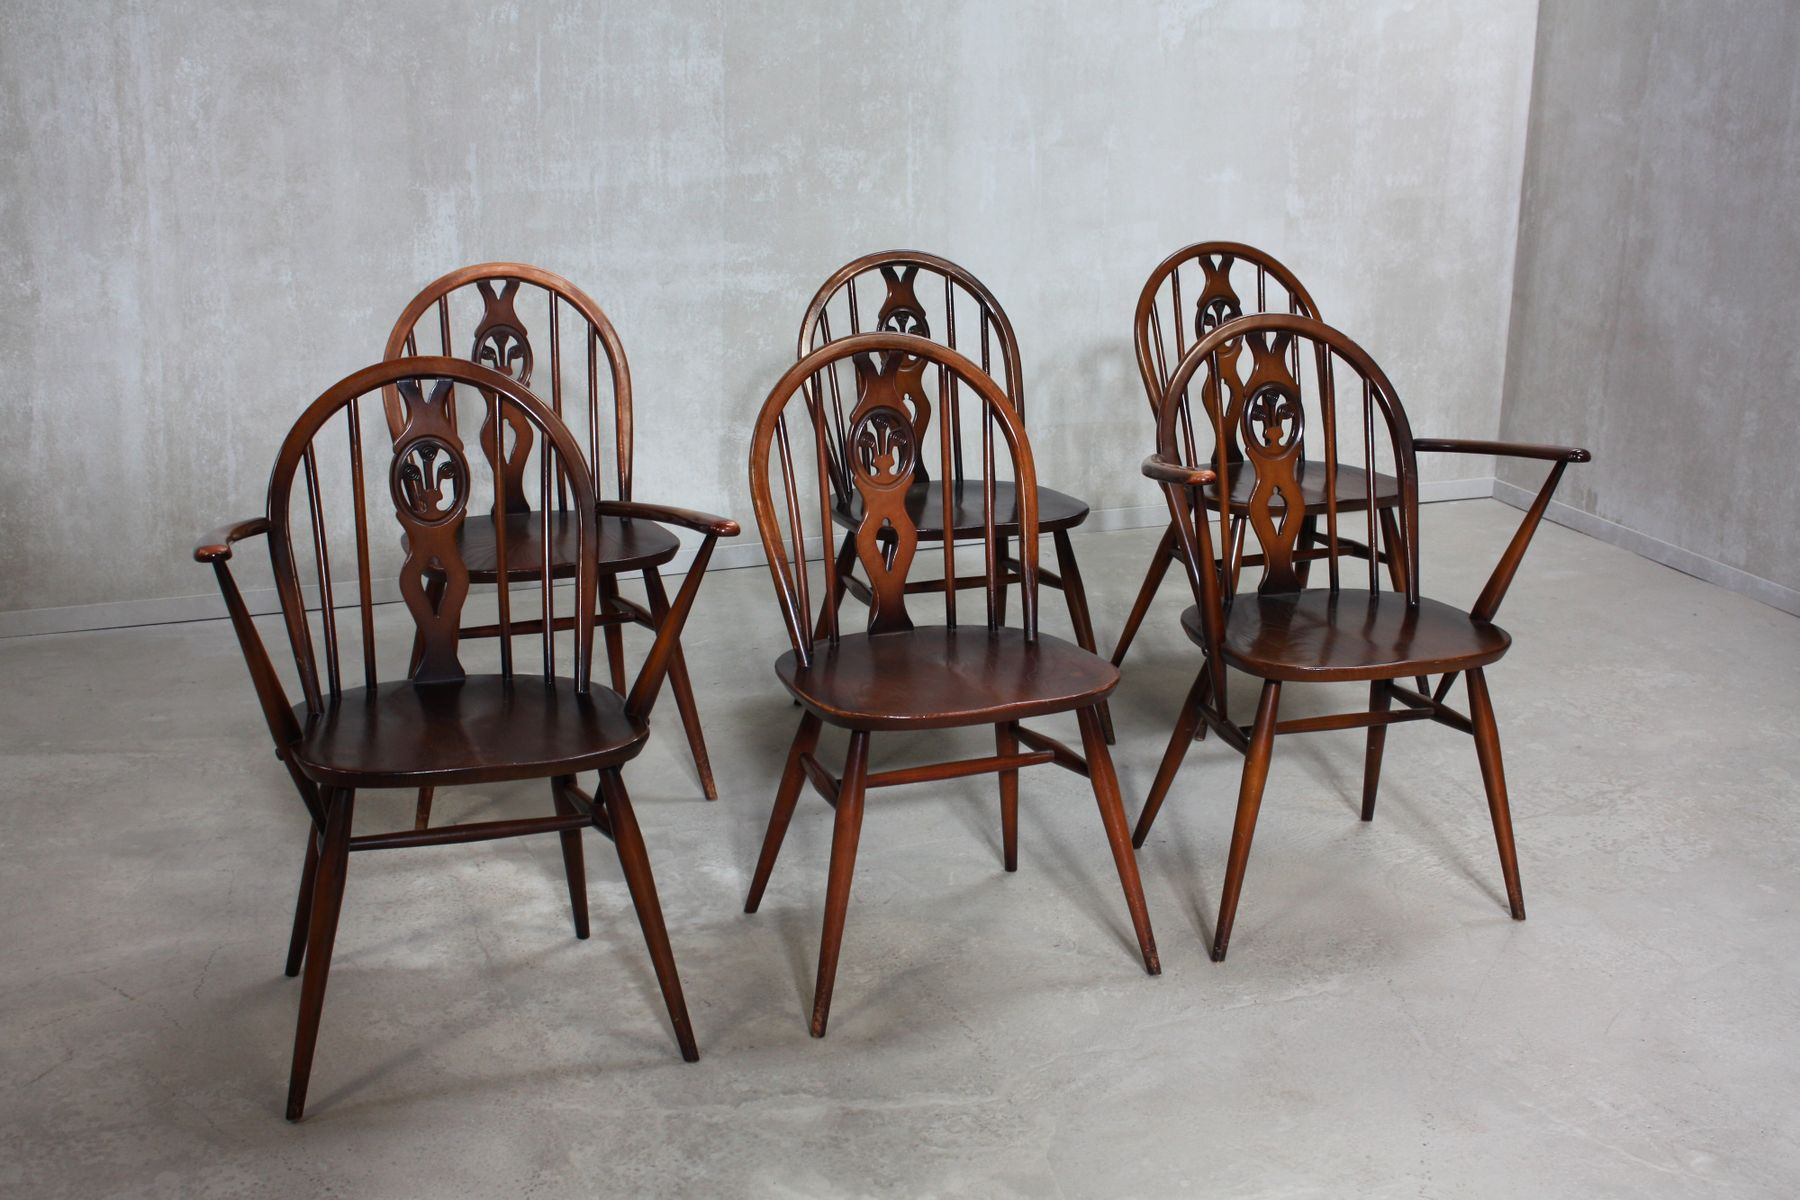 371 U0026 371A Windsor Dining Chairs By Lucian Ercolani For Ercol, 1960s, Set  Of 6